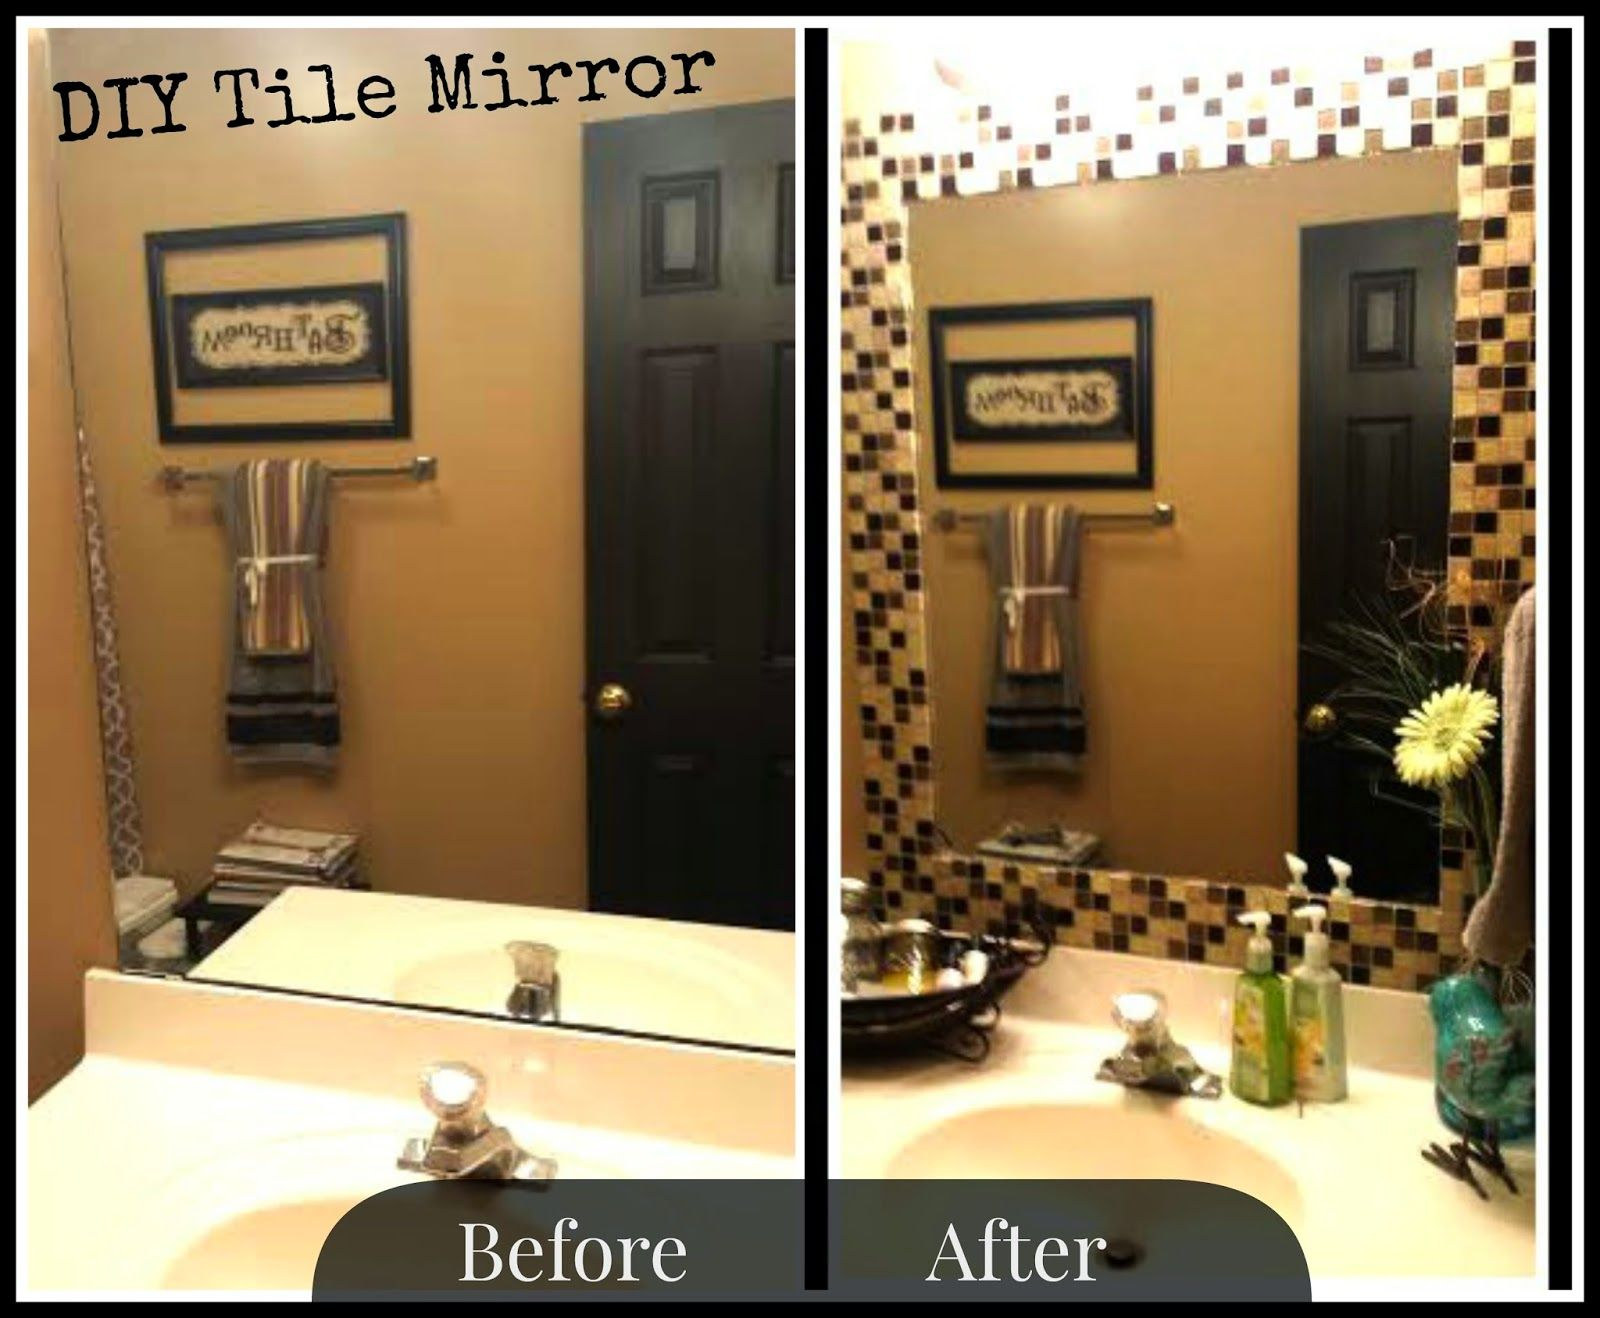 Project Shire Diy Tile Mirror